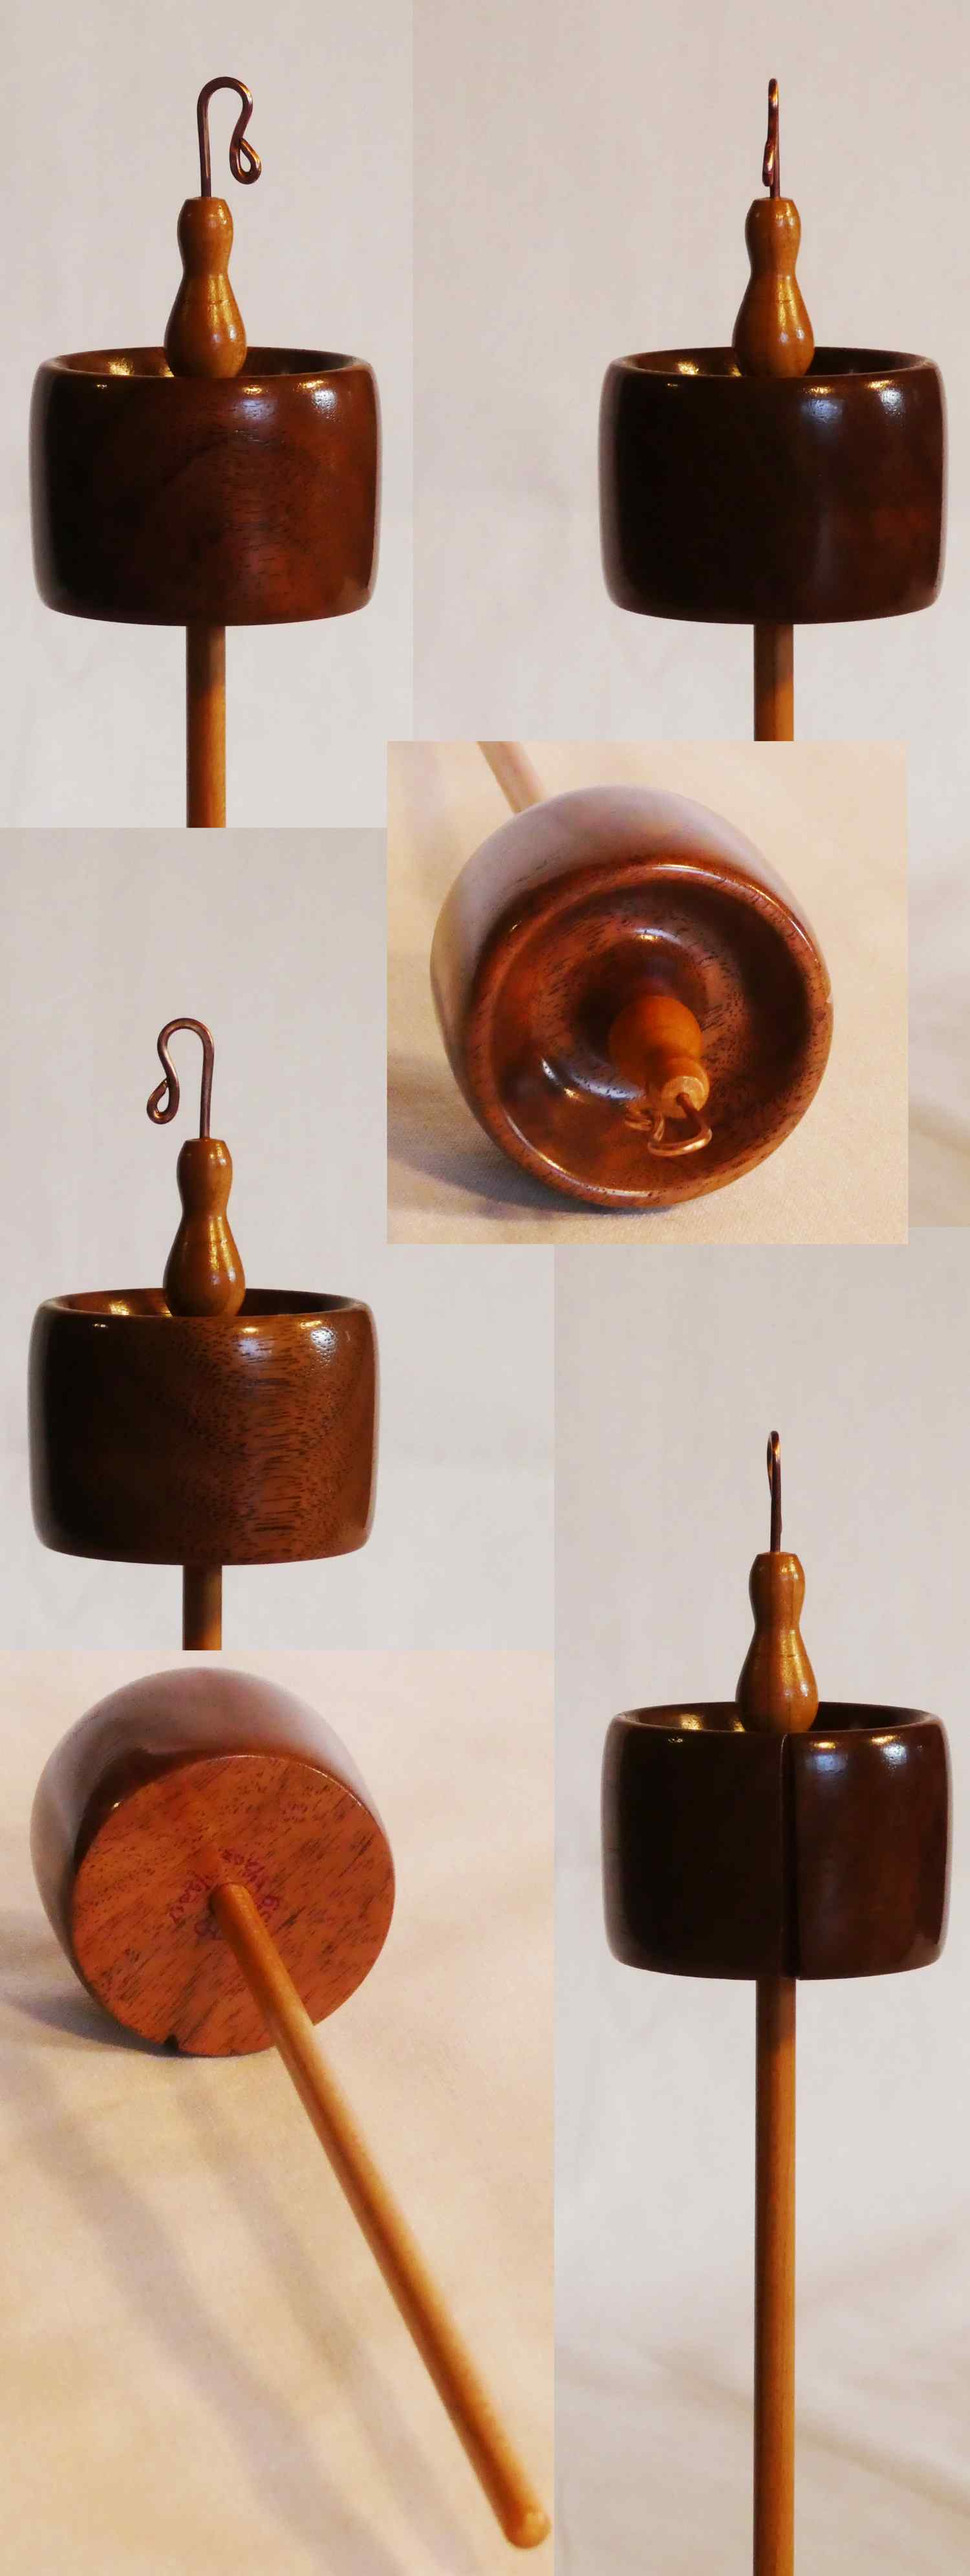 Top whorl drop spindle handcrafted by Cynthia D. Haney from Walnut and Cherry signed number 159 weighing 1.5 oz.